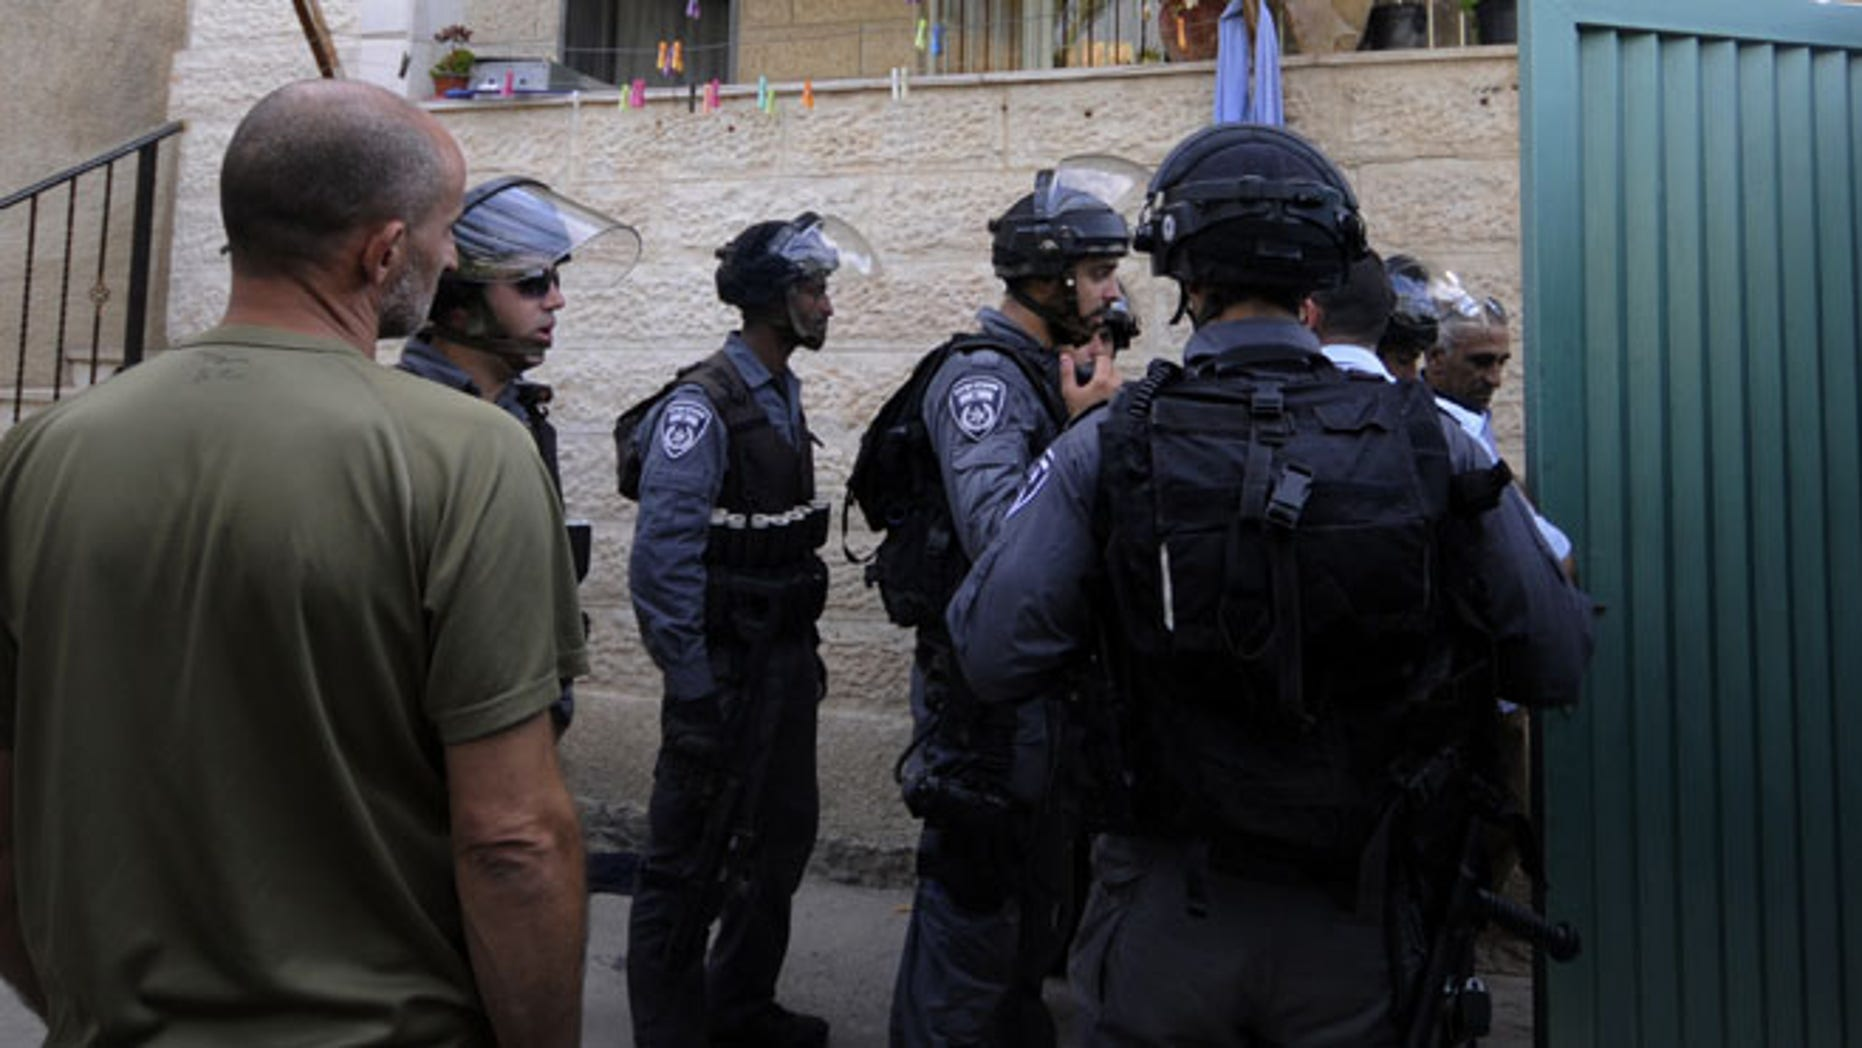 Sept. 30, 2014: Israeli police officers guard the house of Ziad Qarain, that Jewish settlers moved into, at the Palestinian neighborhood of Silwan, East Jerusalem